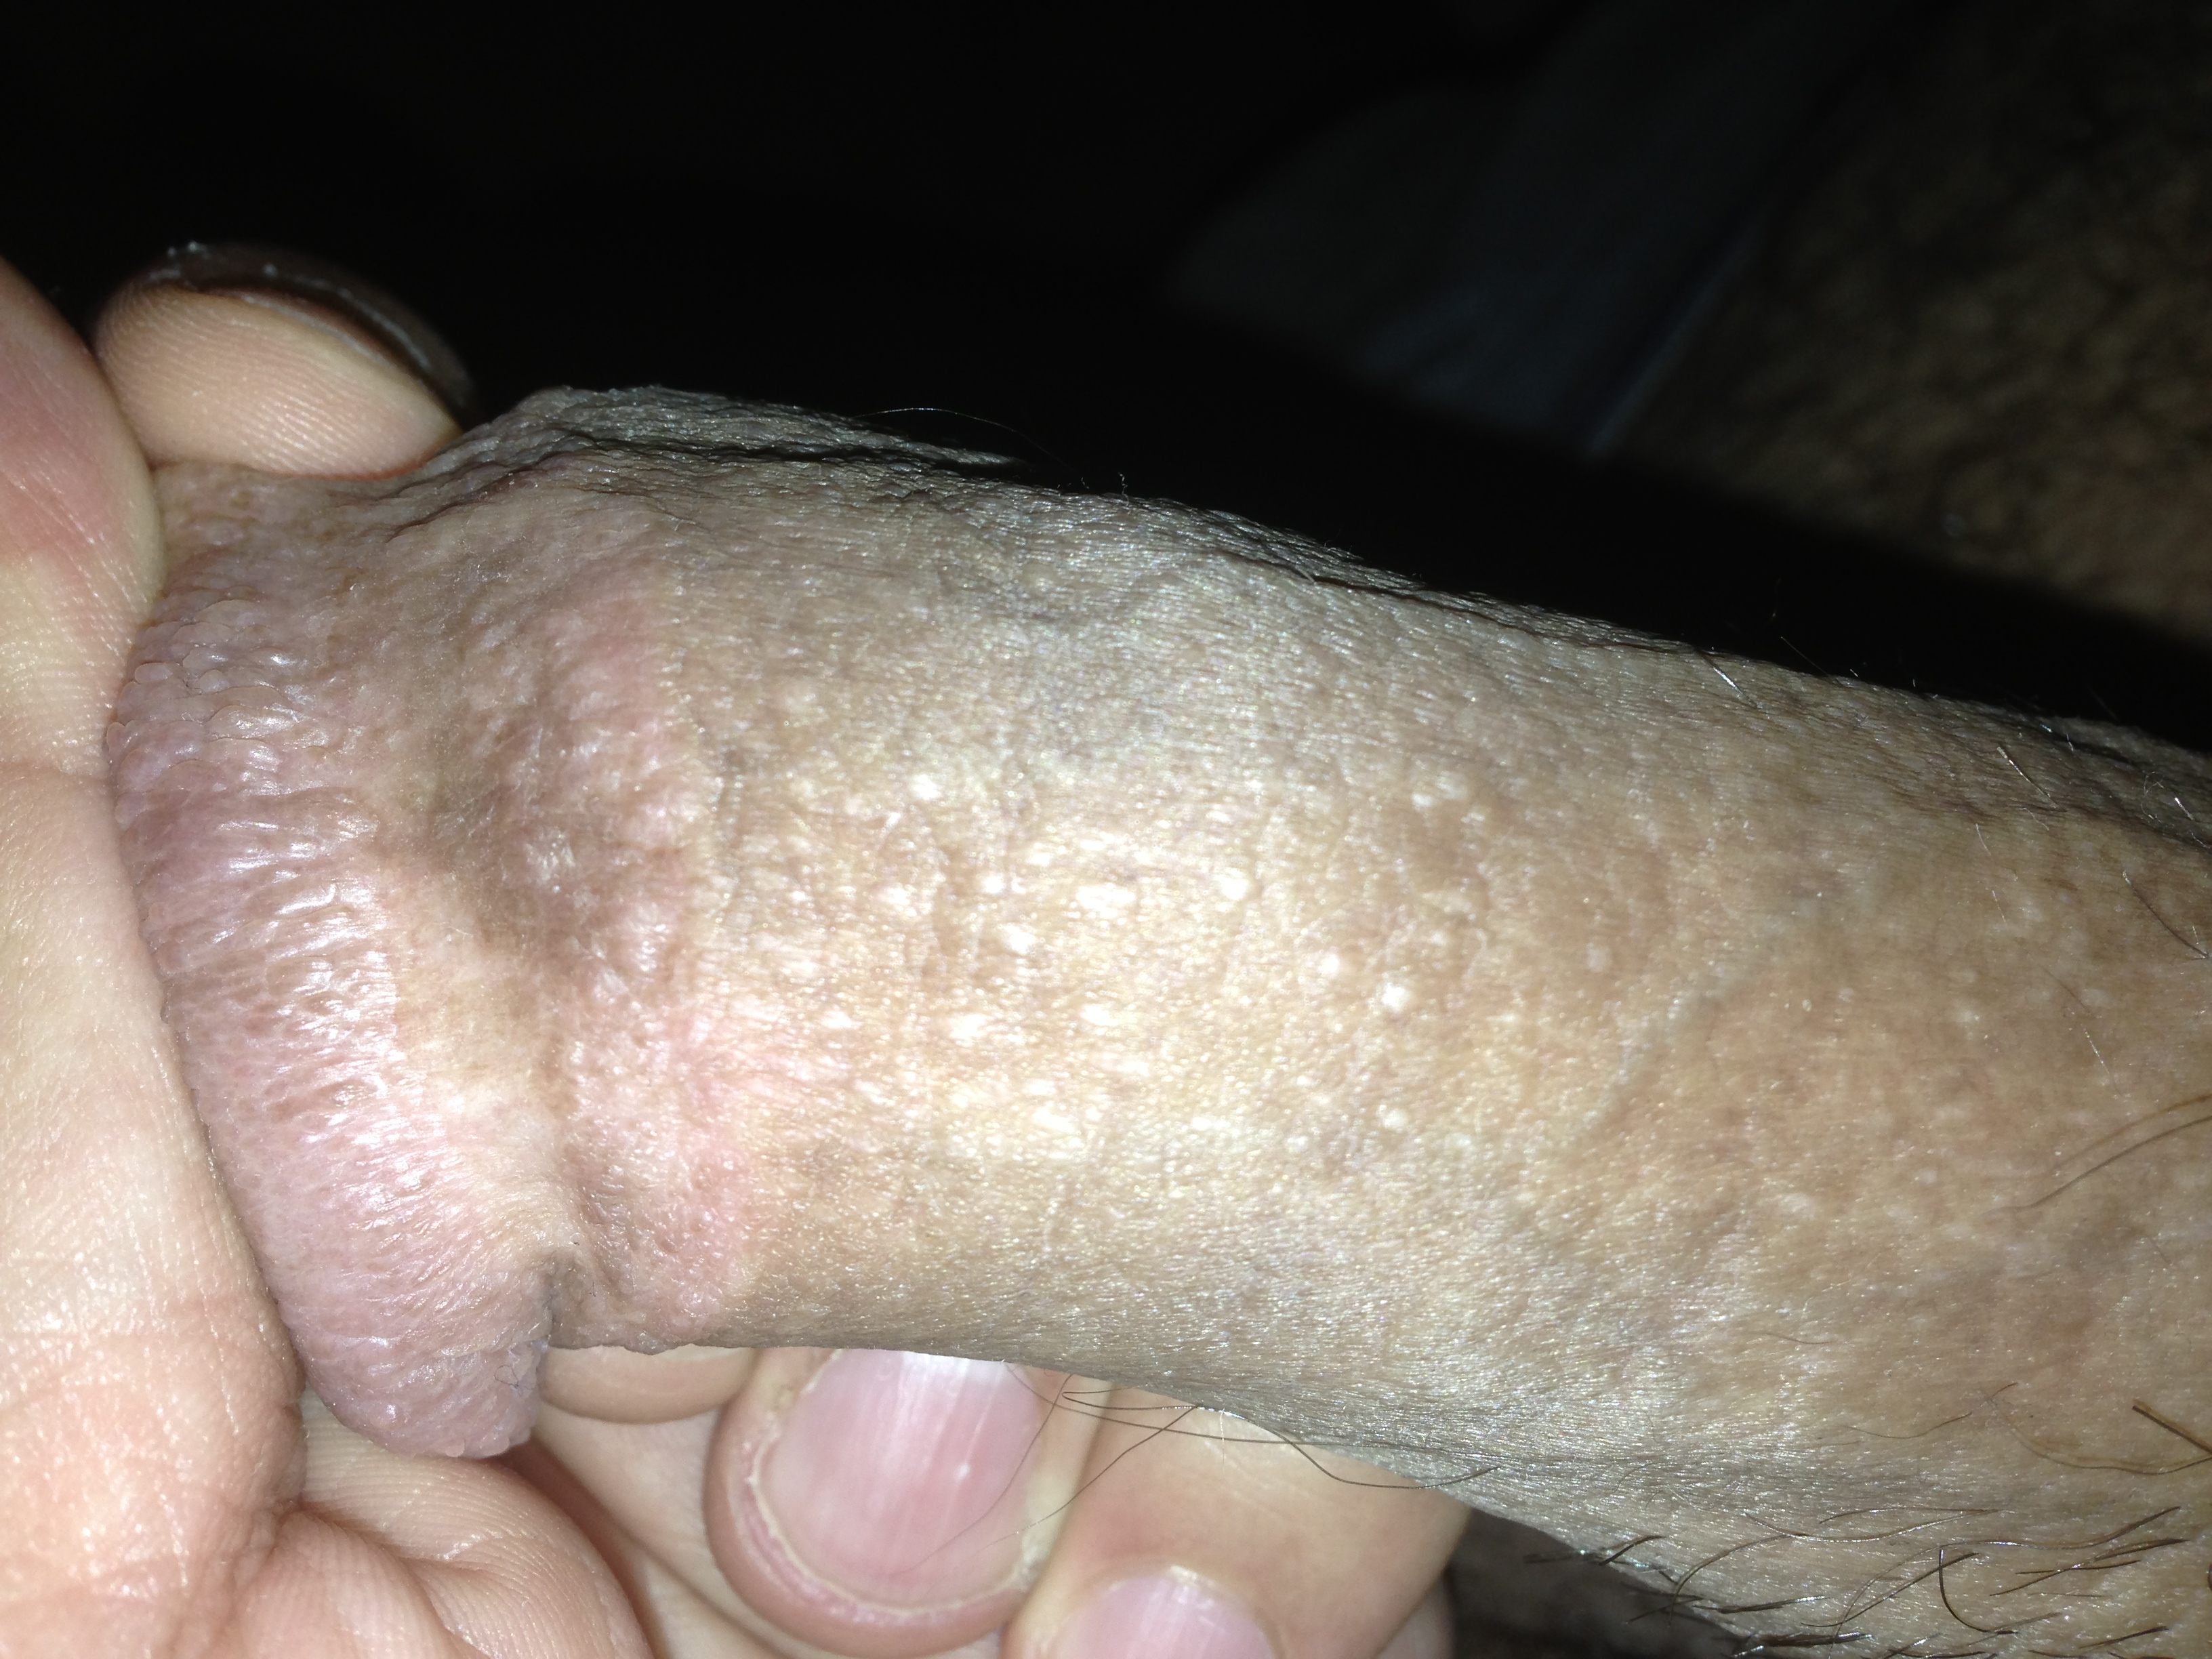 White spots on penis normal